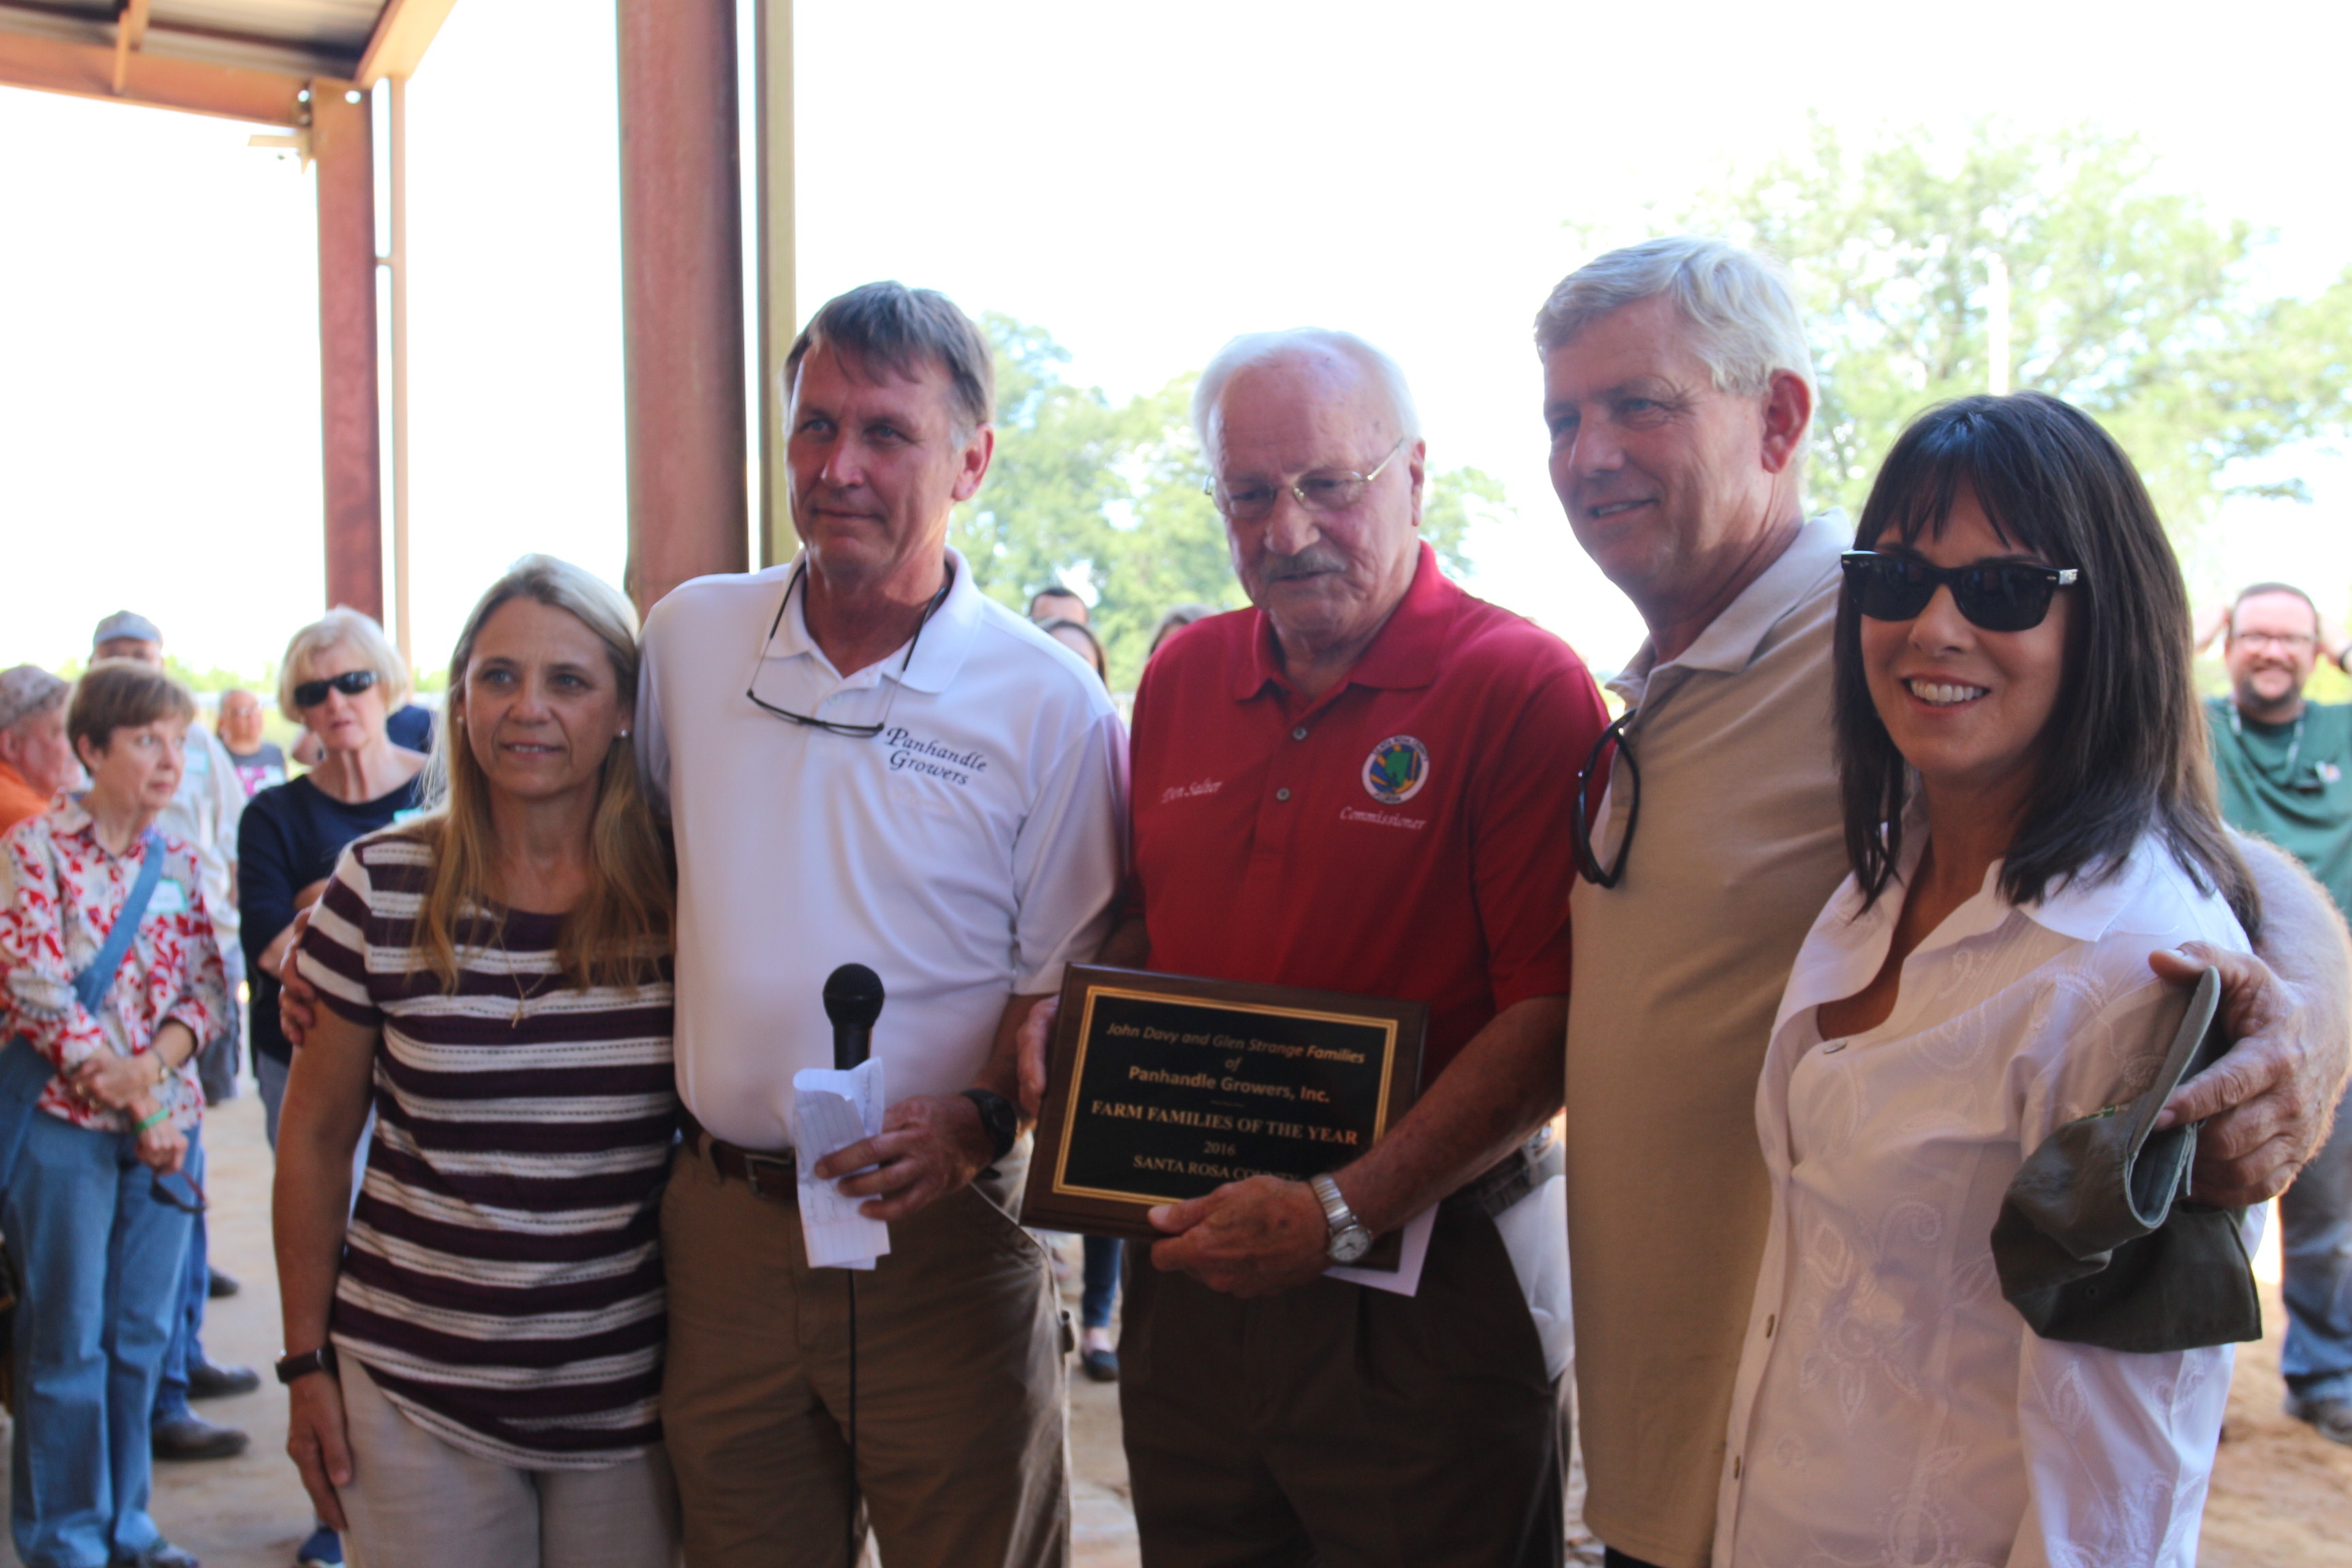 Glen and Janet Strange and John and Sara Davy accept 2016 Santa Rosa County Farm Families Award from County Commissioner Don Salter